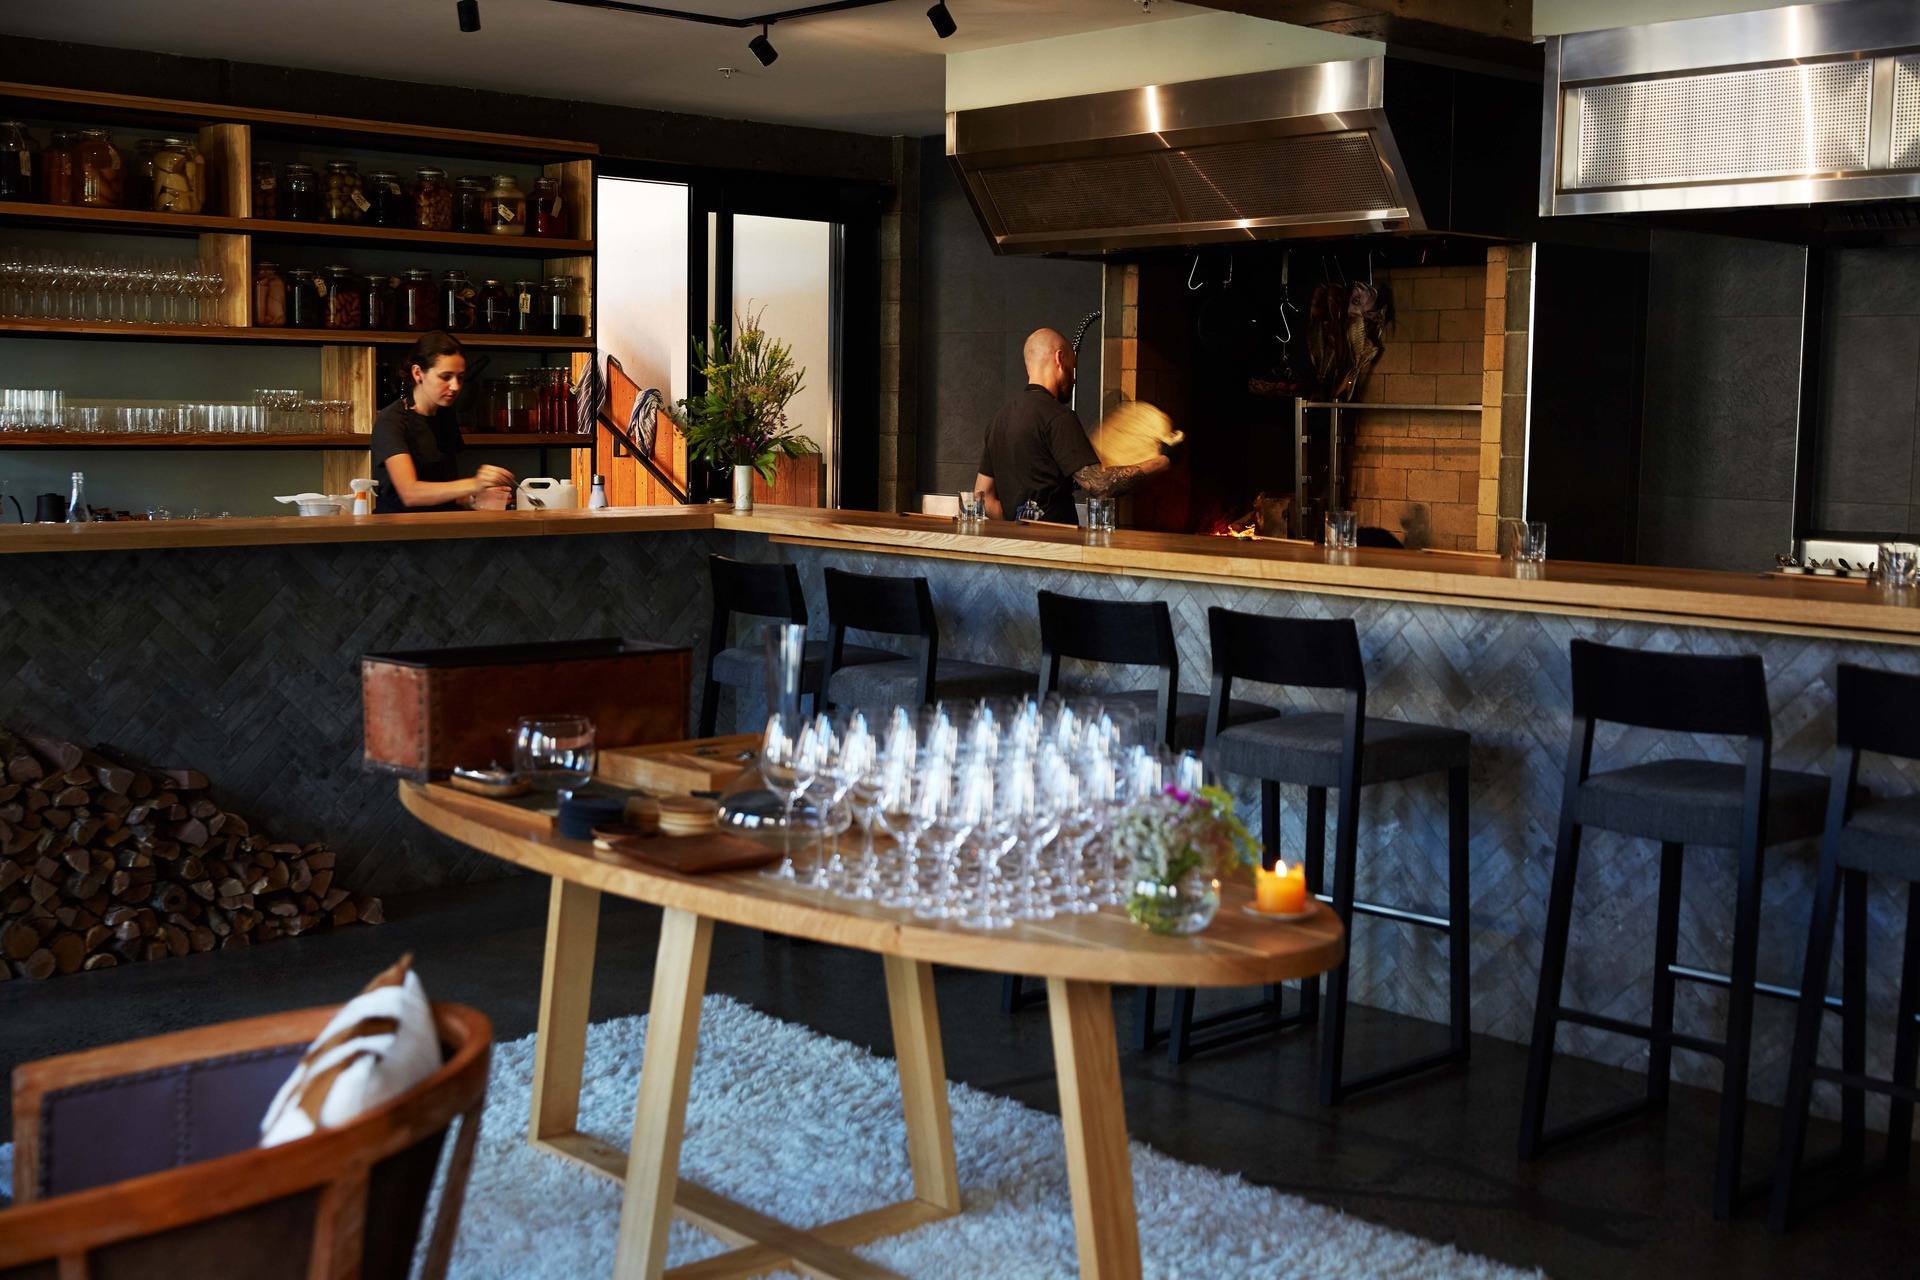 Awesome Pasture A Restaurant Without Tables Named As Aucklands Download Free Architecture Designs Licukmadebymaigaardcom